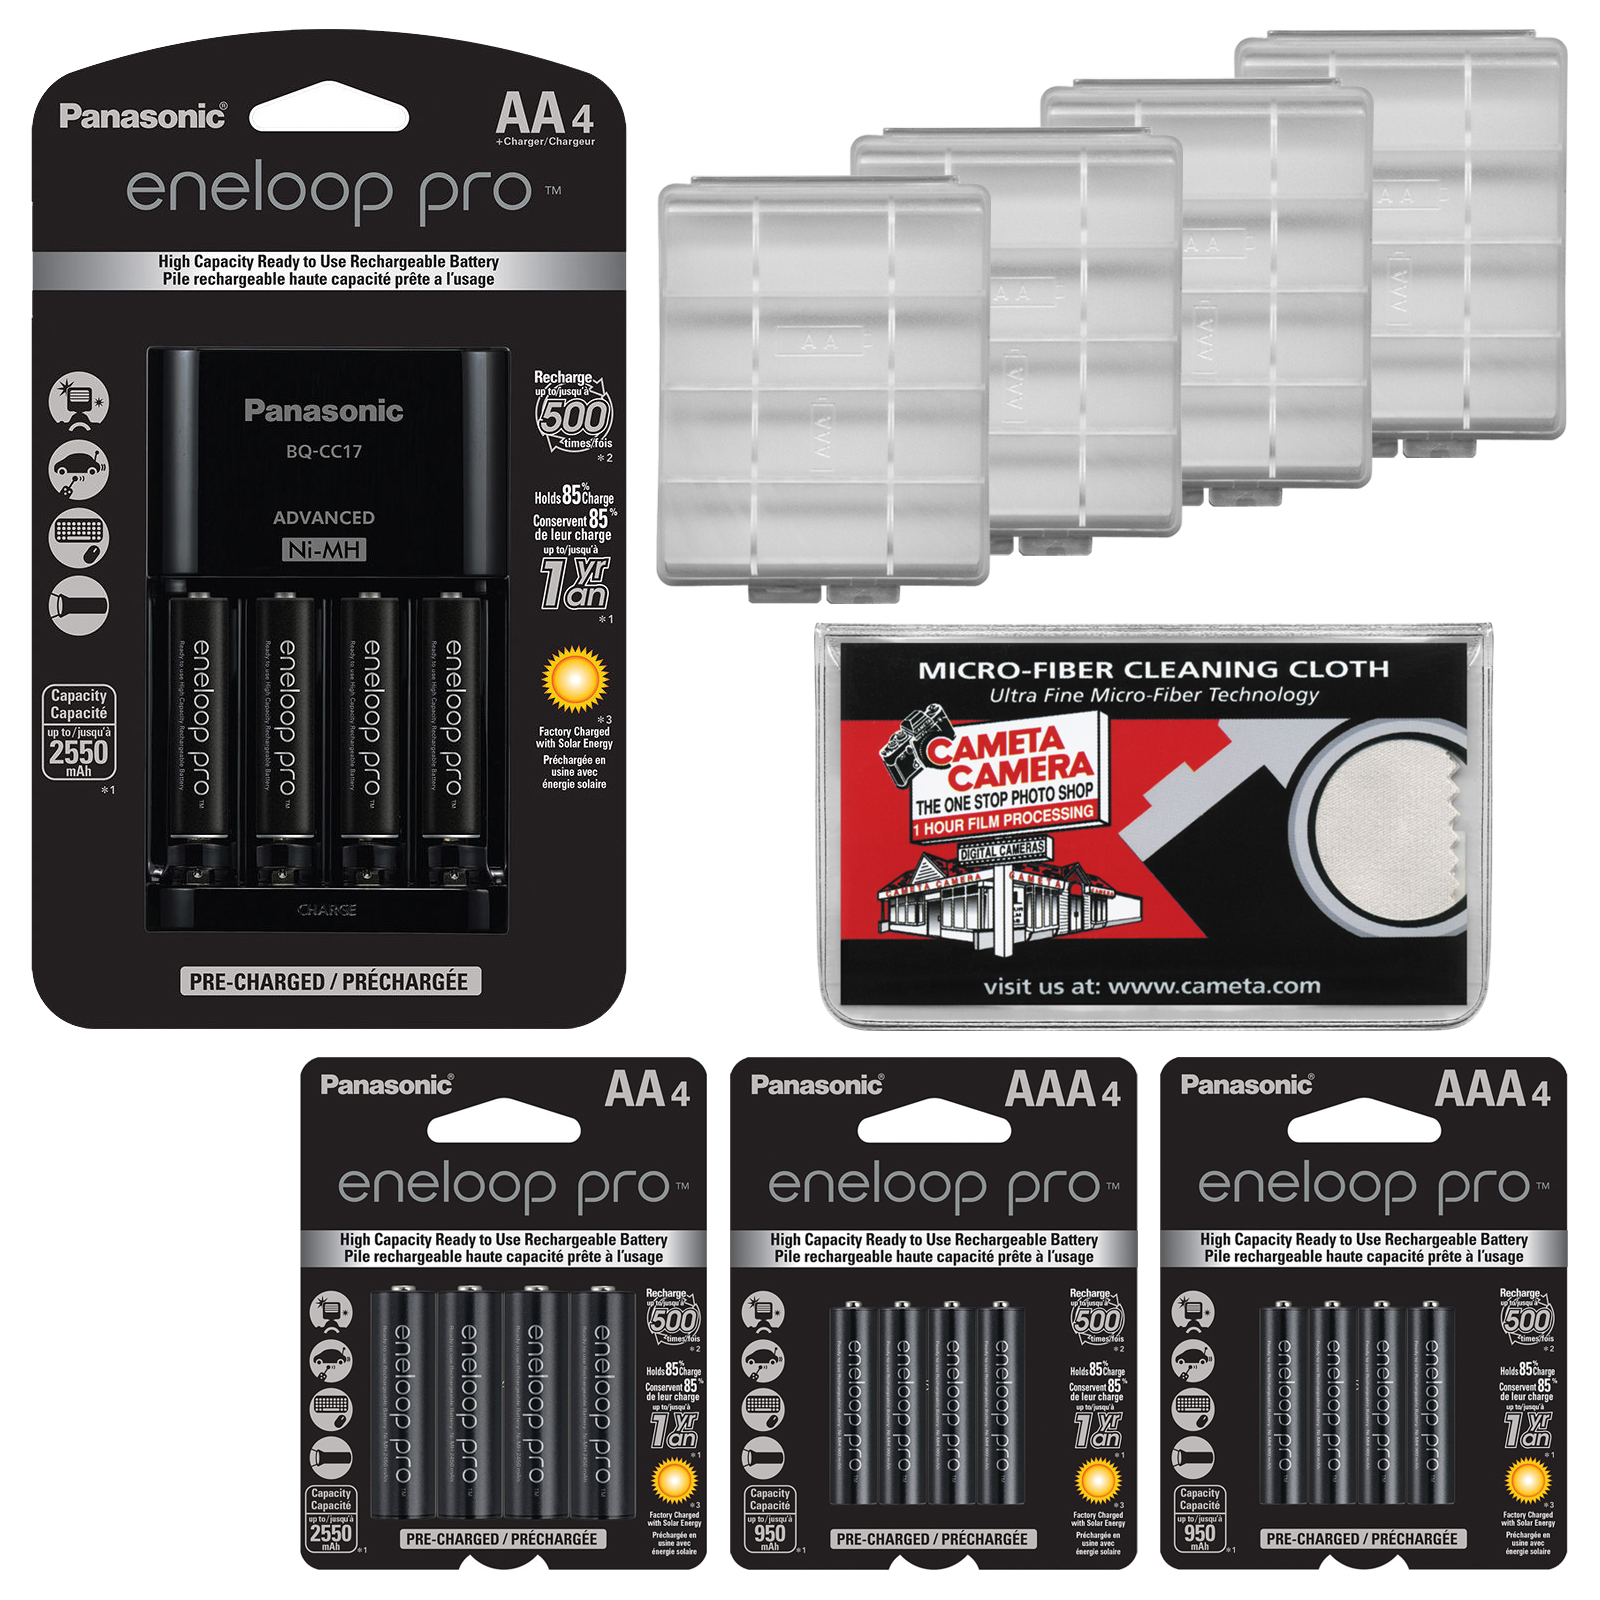 Panasonic eneloop Pro (4) AA 2550mAh Pre-Charged NiMH Rechargeable Batteries & Charger + (4) Extra AA Batteries + (8) AAA Batteries + (4) Battery Cases + Kit